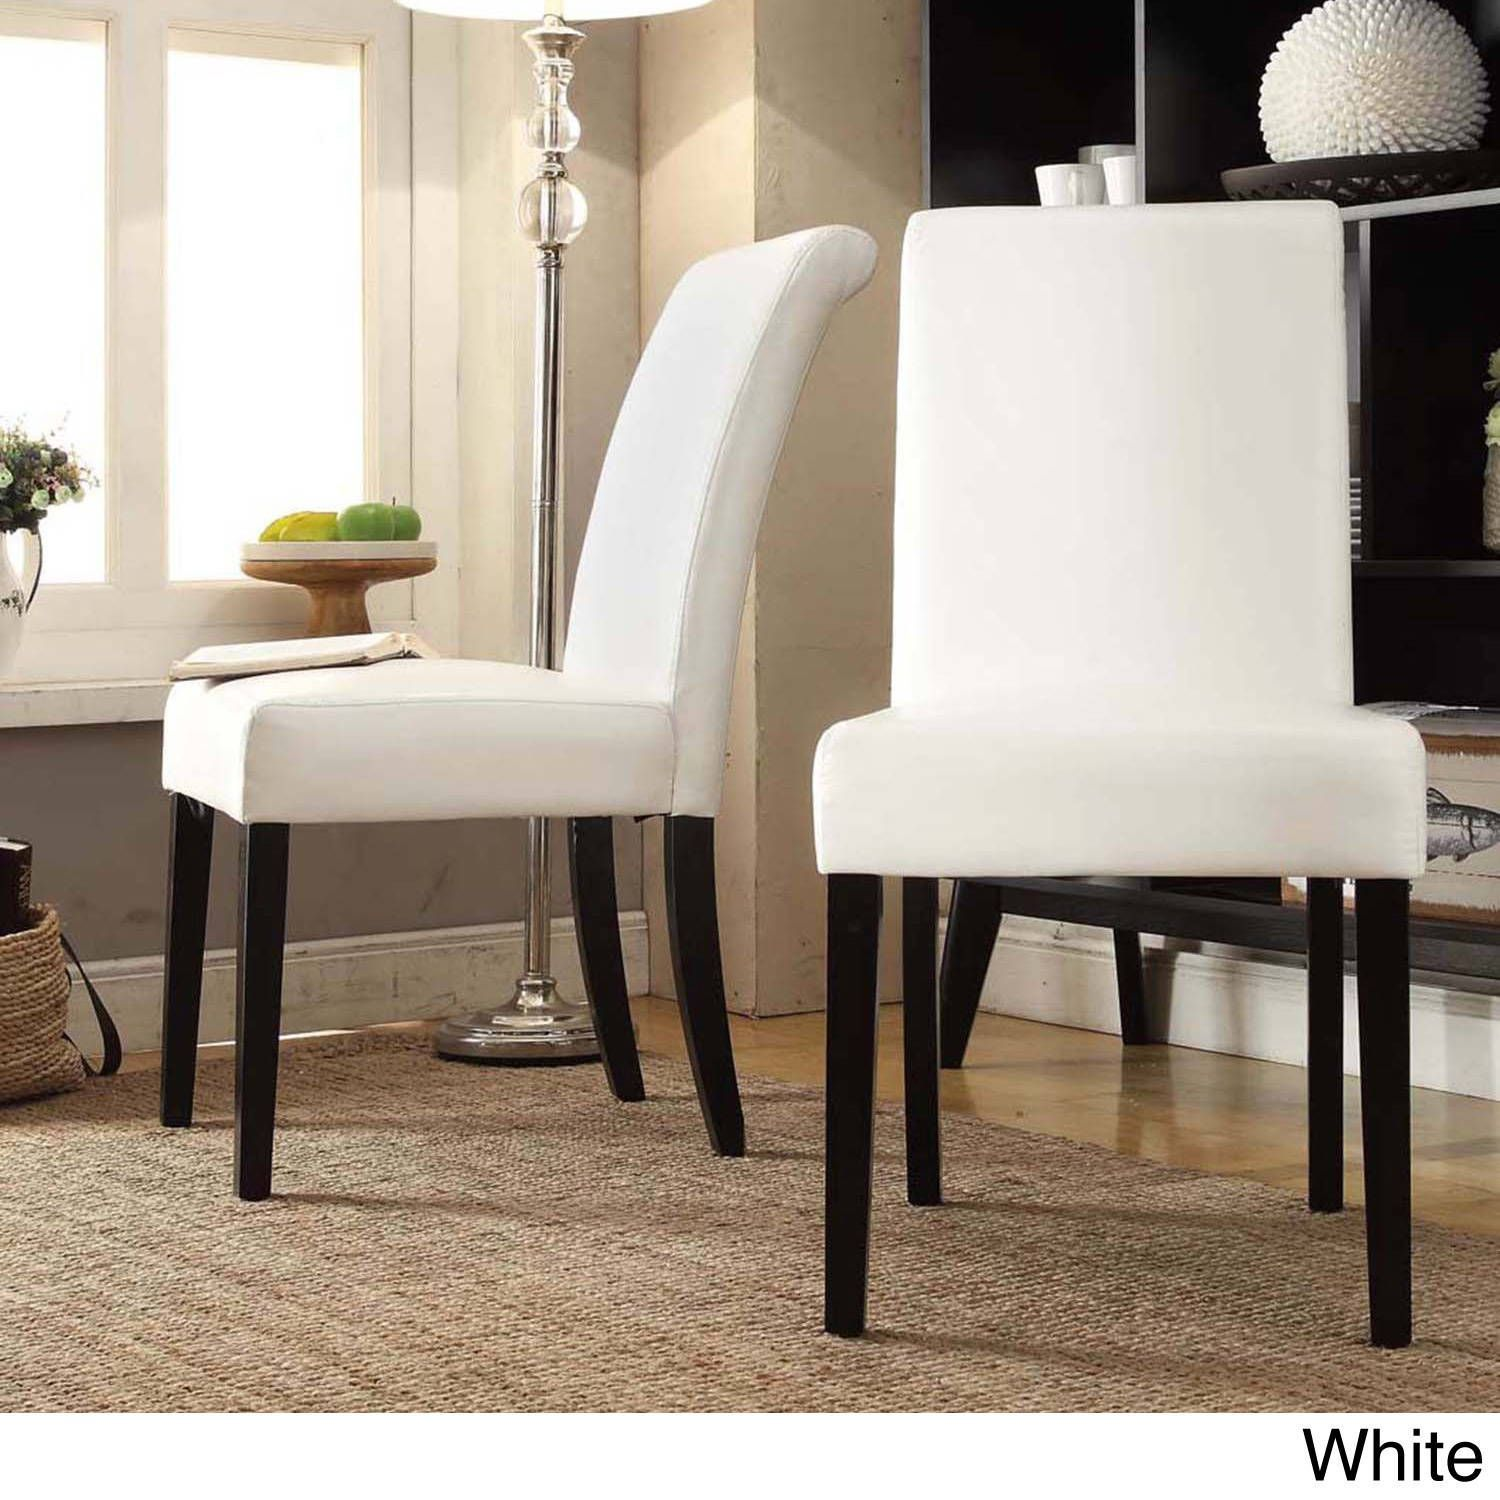 Dorian Faux Leather Upholstered Dining Chair Set Of 2 By Inspire Q Bold Faux Leather Dining Chairs Dining Chairs White Leather Chair